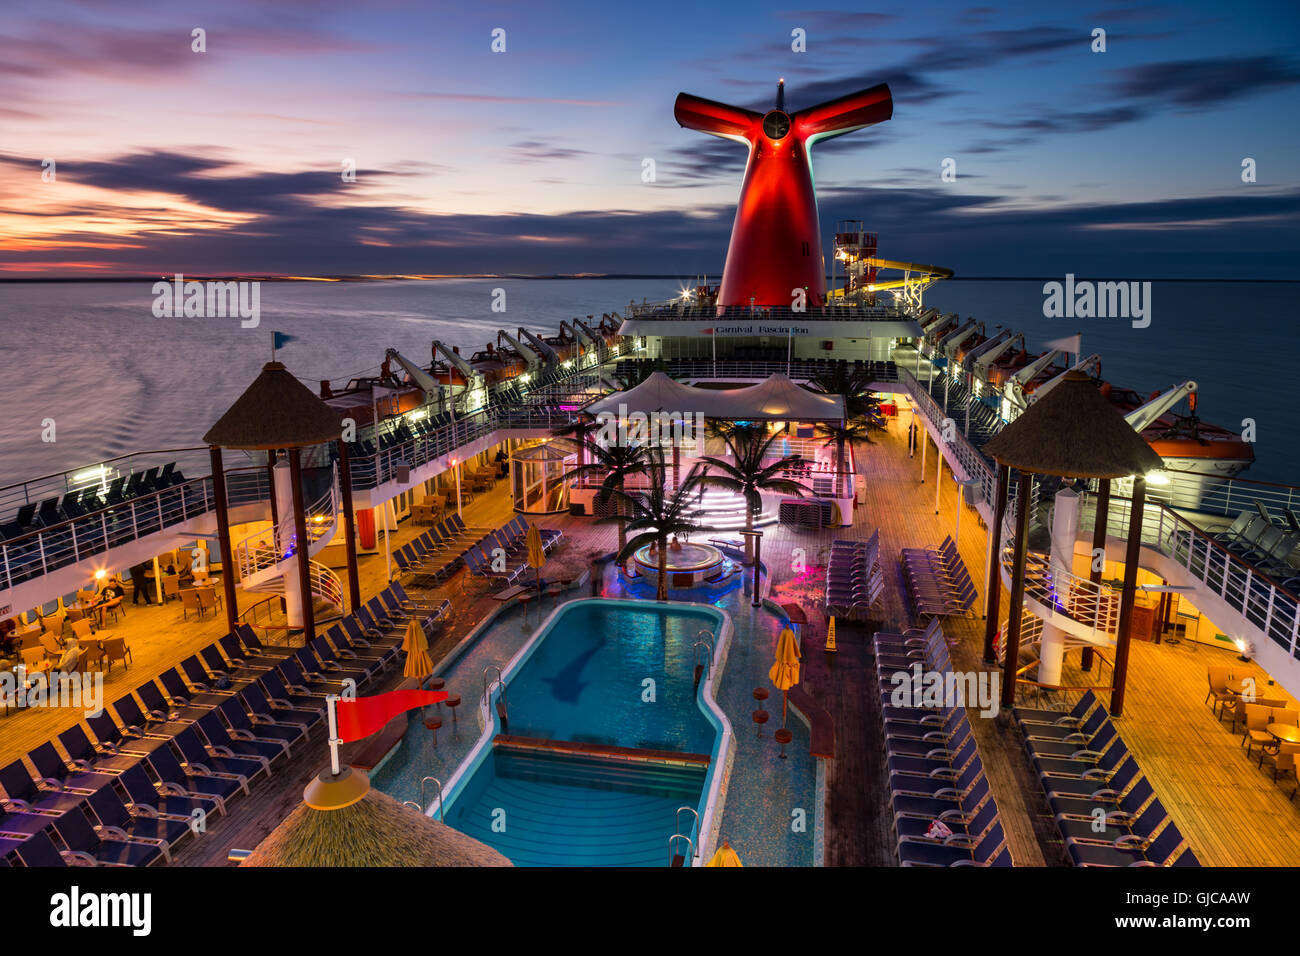 Carnival Fascination at Sunset - Stock Image